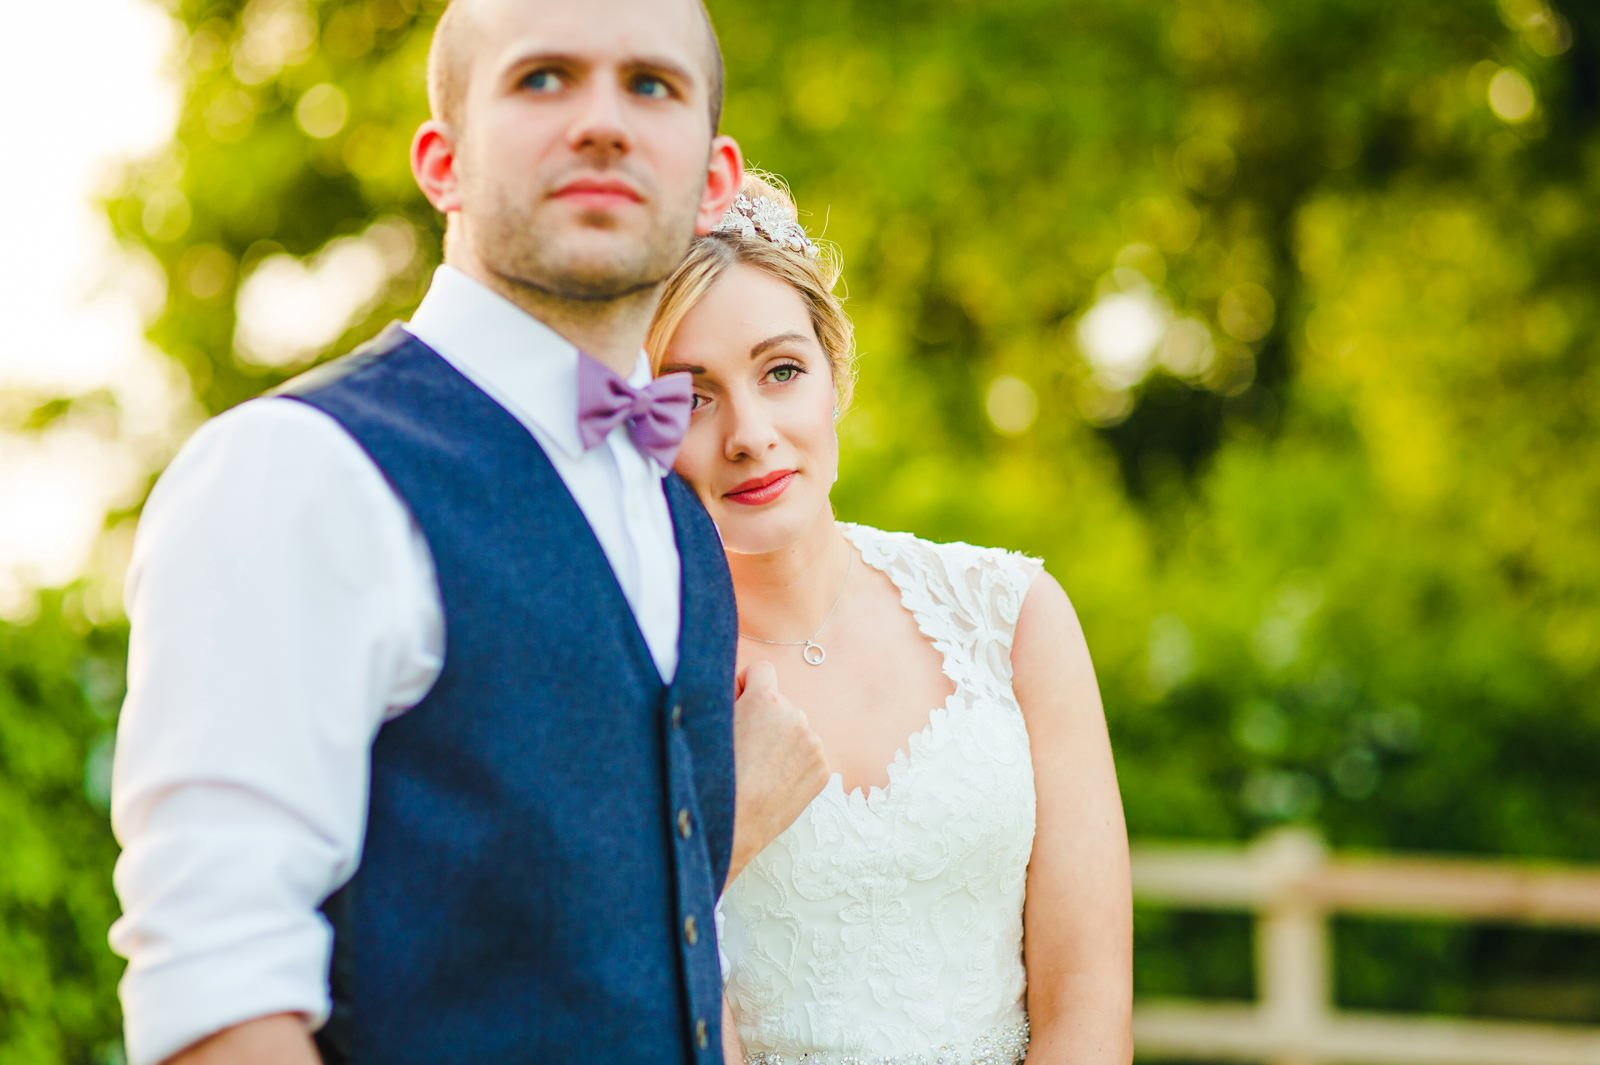 Millers Of Netley wedding, Dorrington, Shrewsbury | Emma + Ben 89